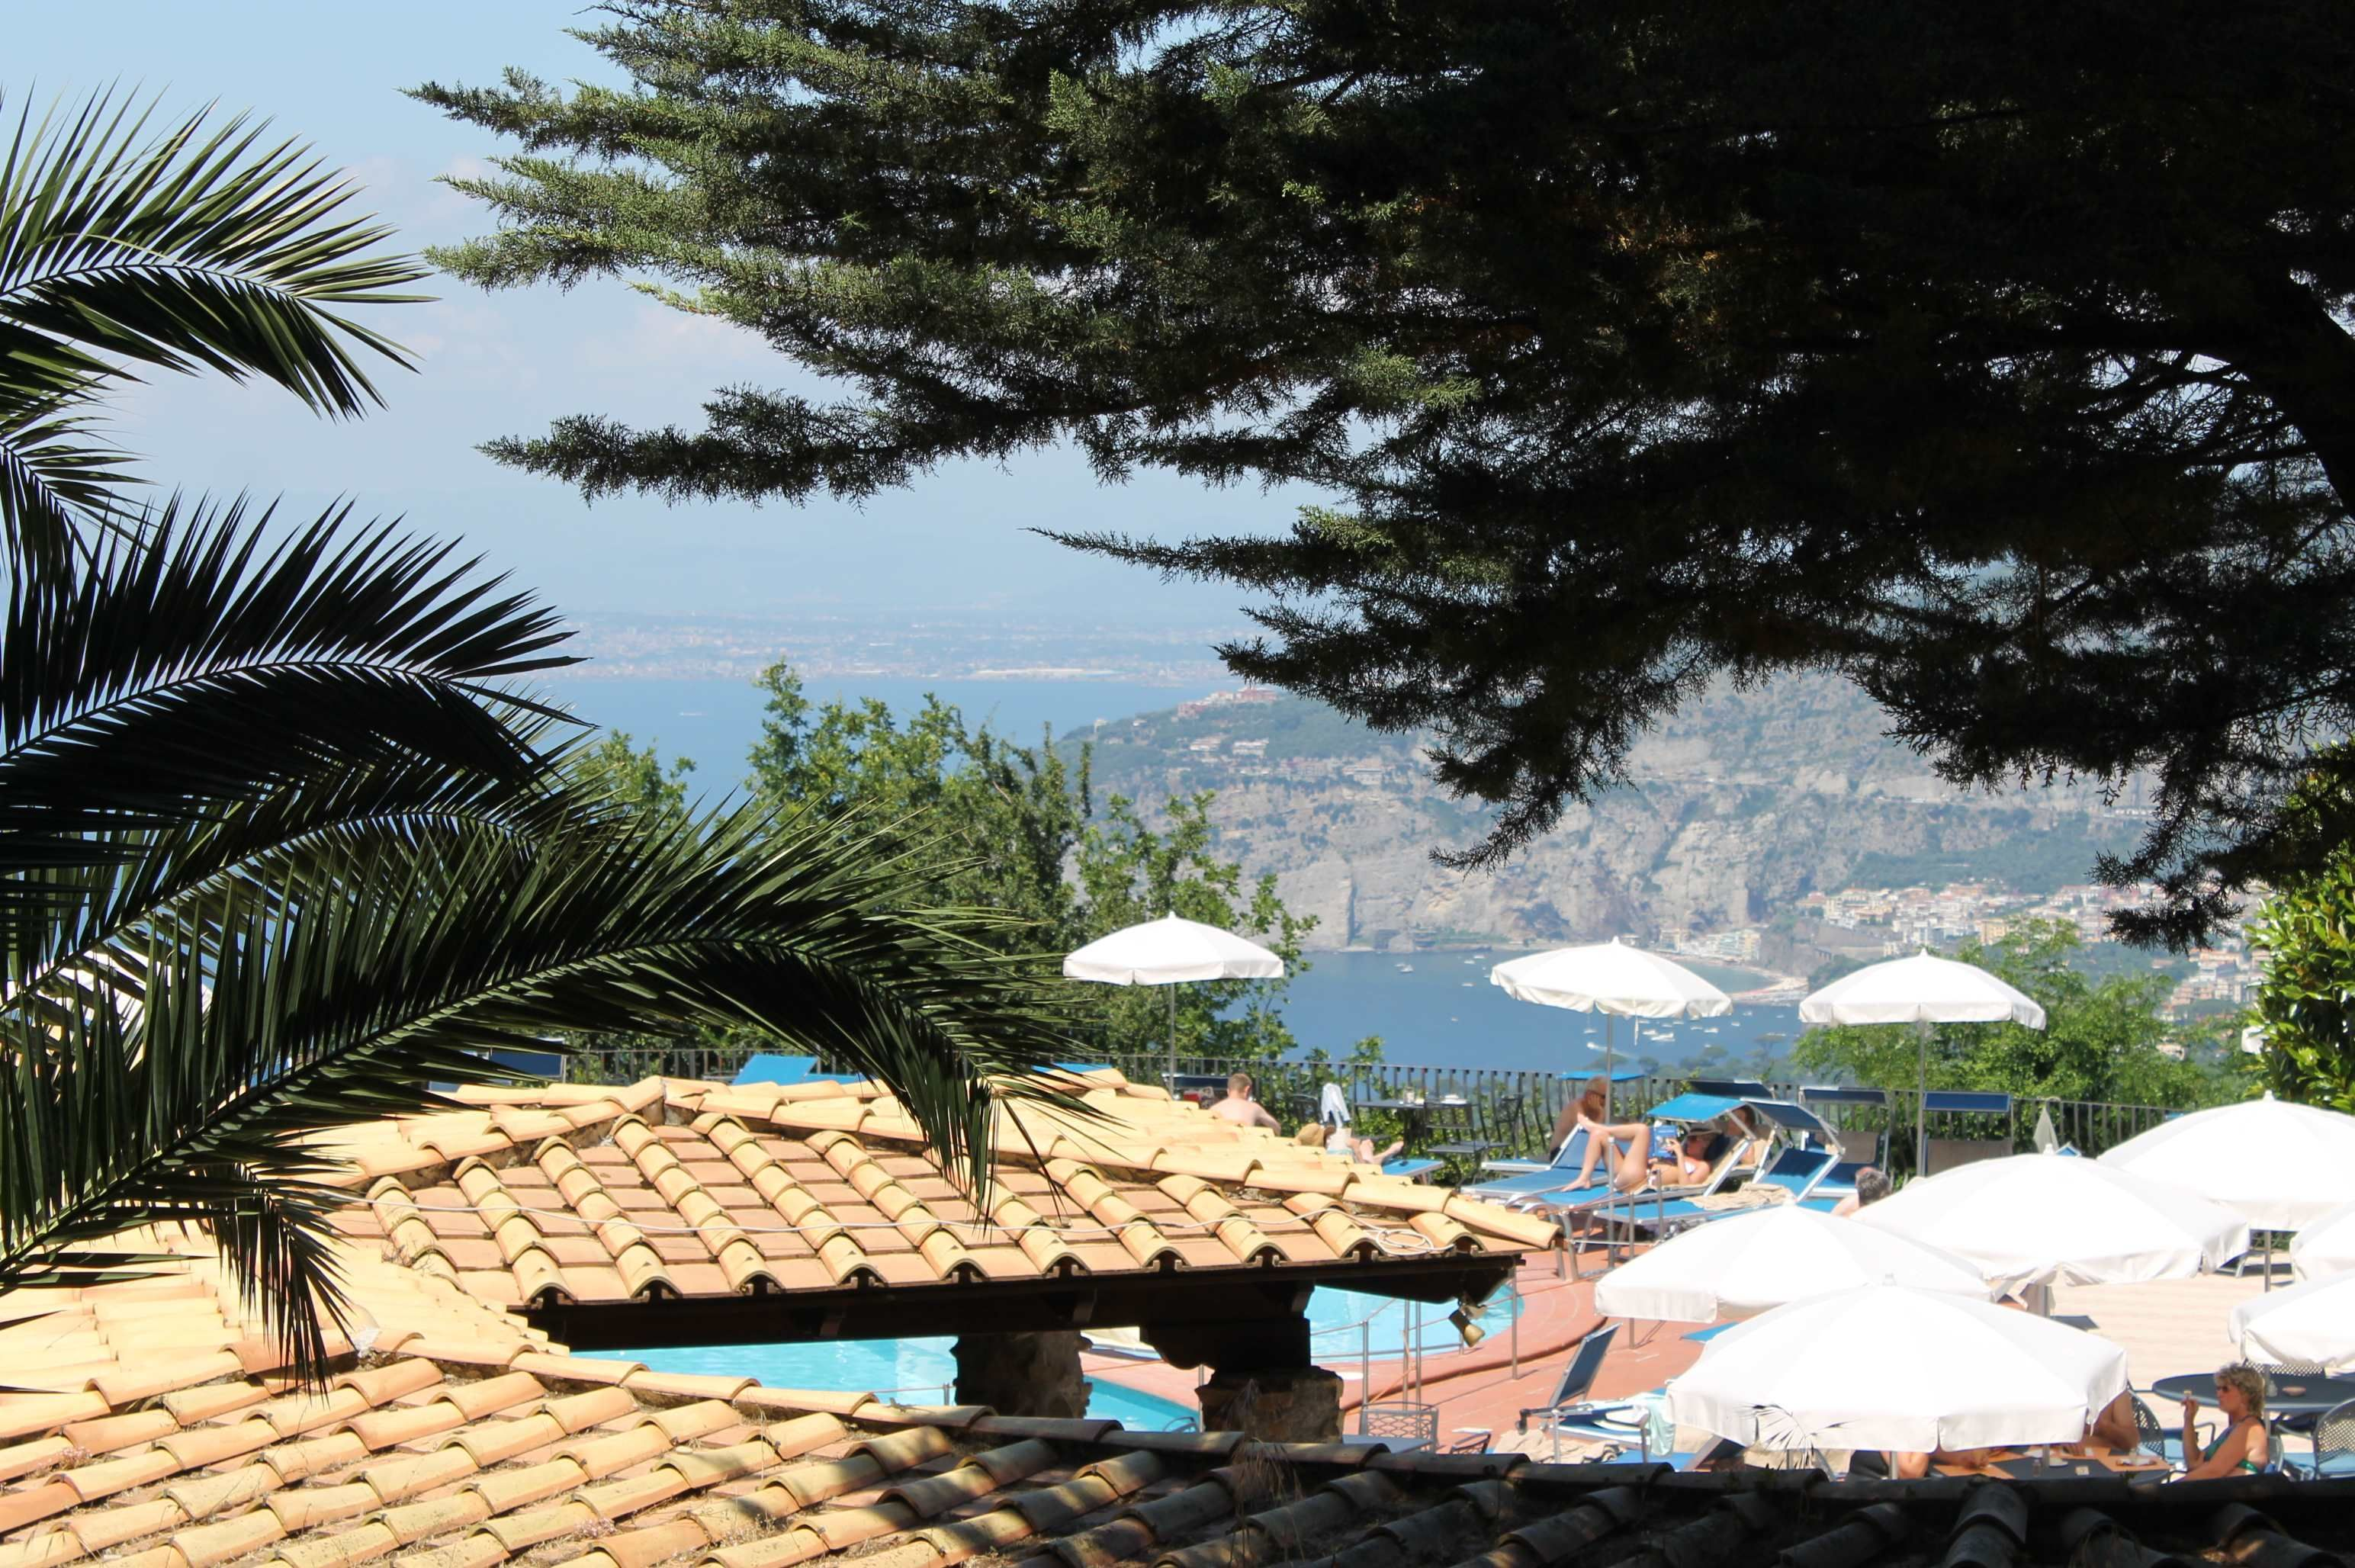 Up, Up, Up in the Mountains of the Amalfi Coast ( Pool View from the hotel) | TigSee